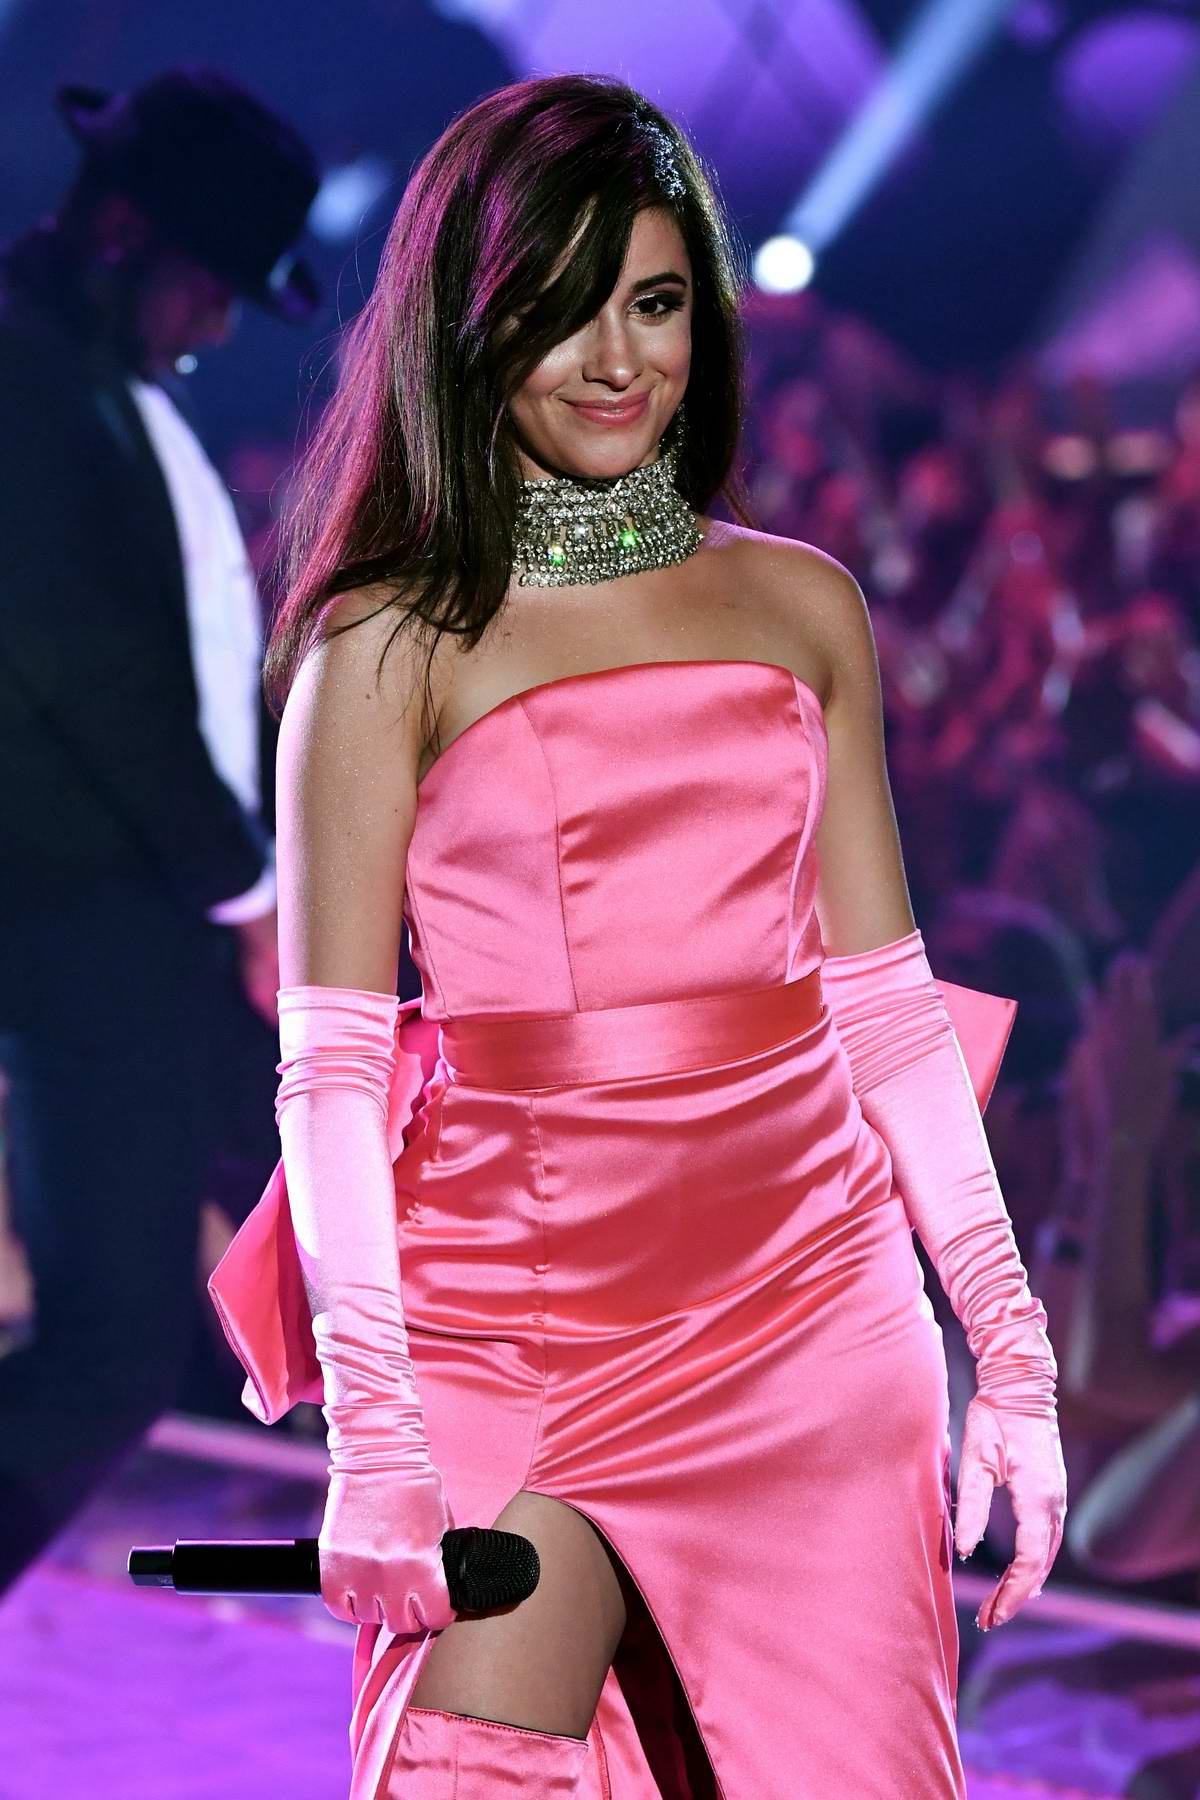 camila cabello performs at the 2018 iheartradio music awards